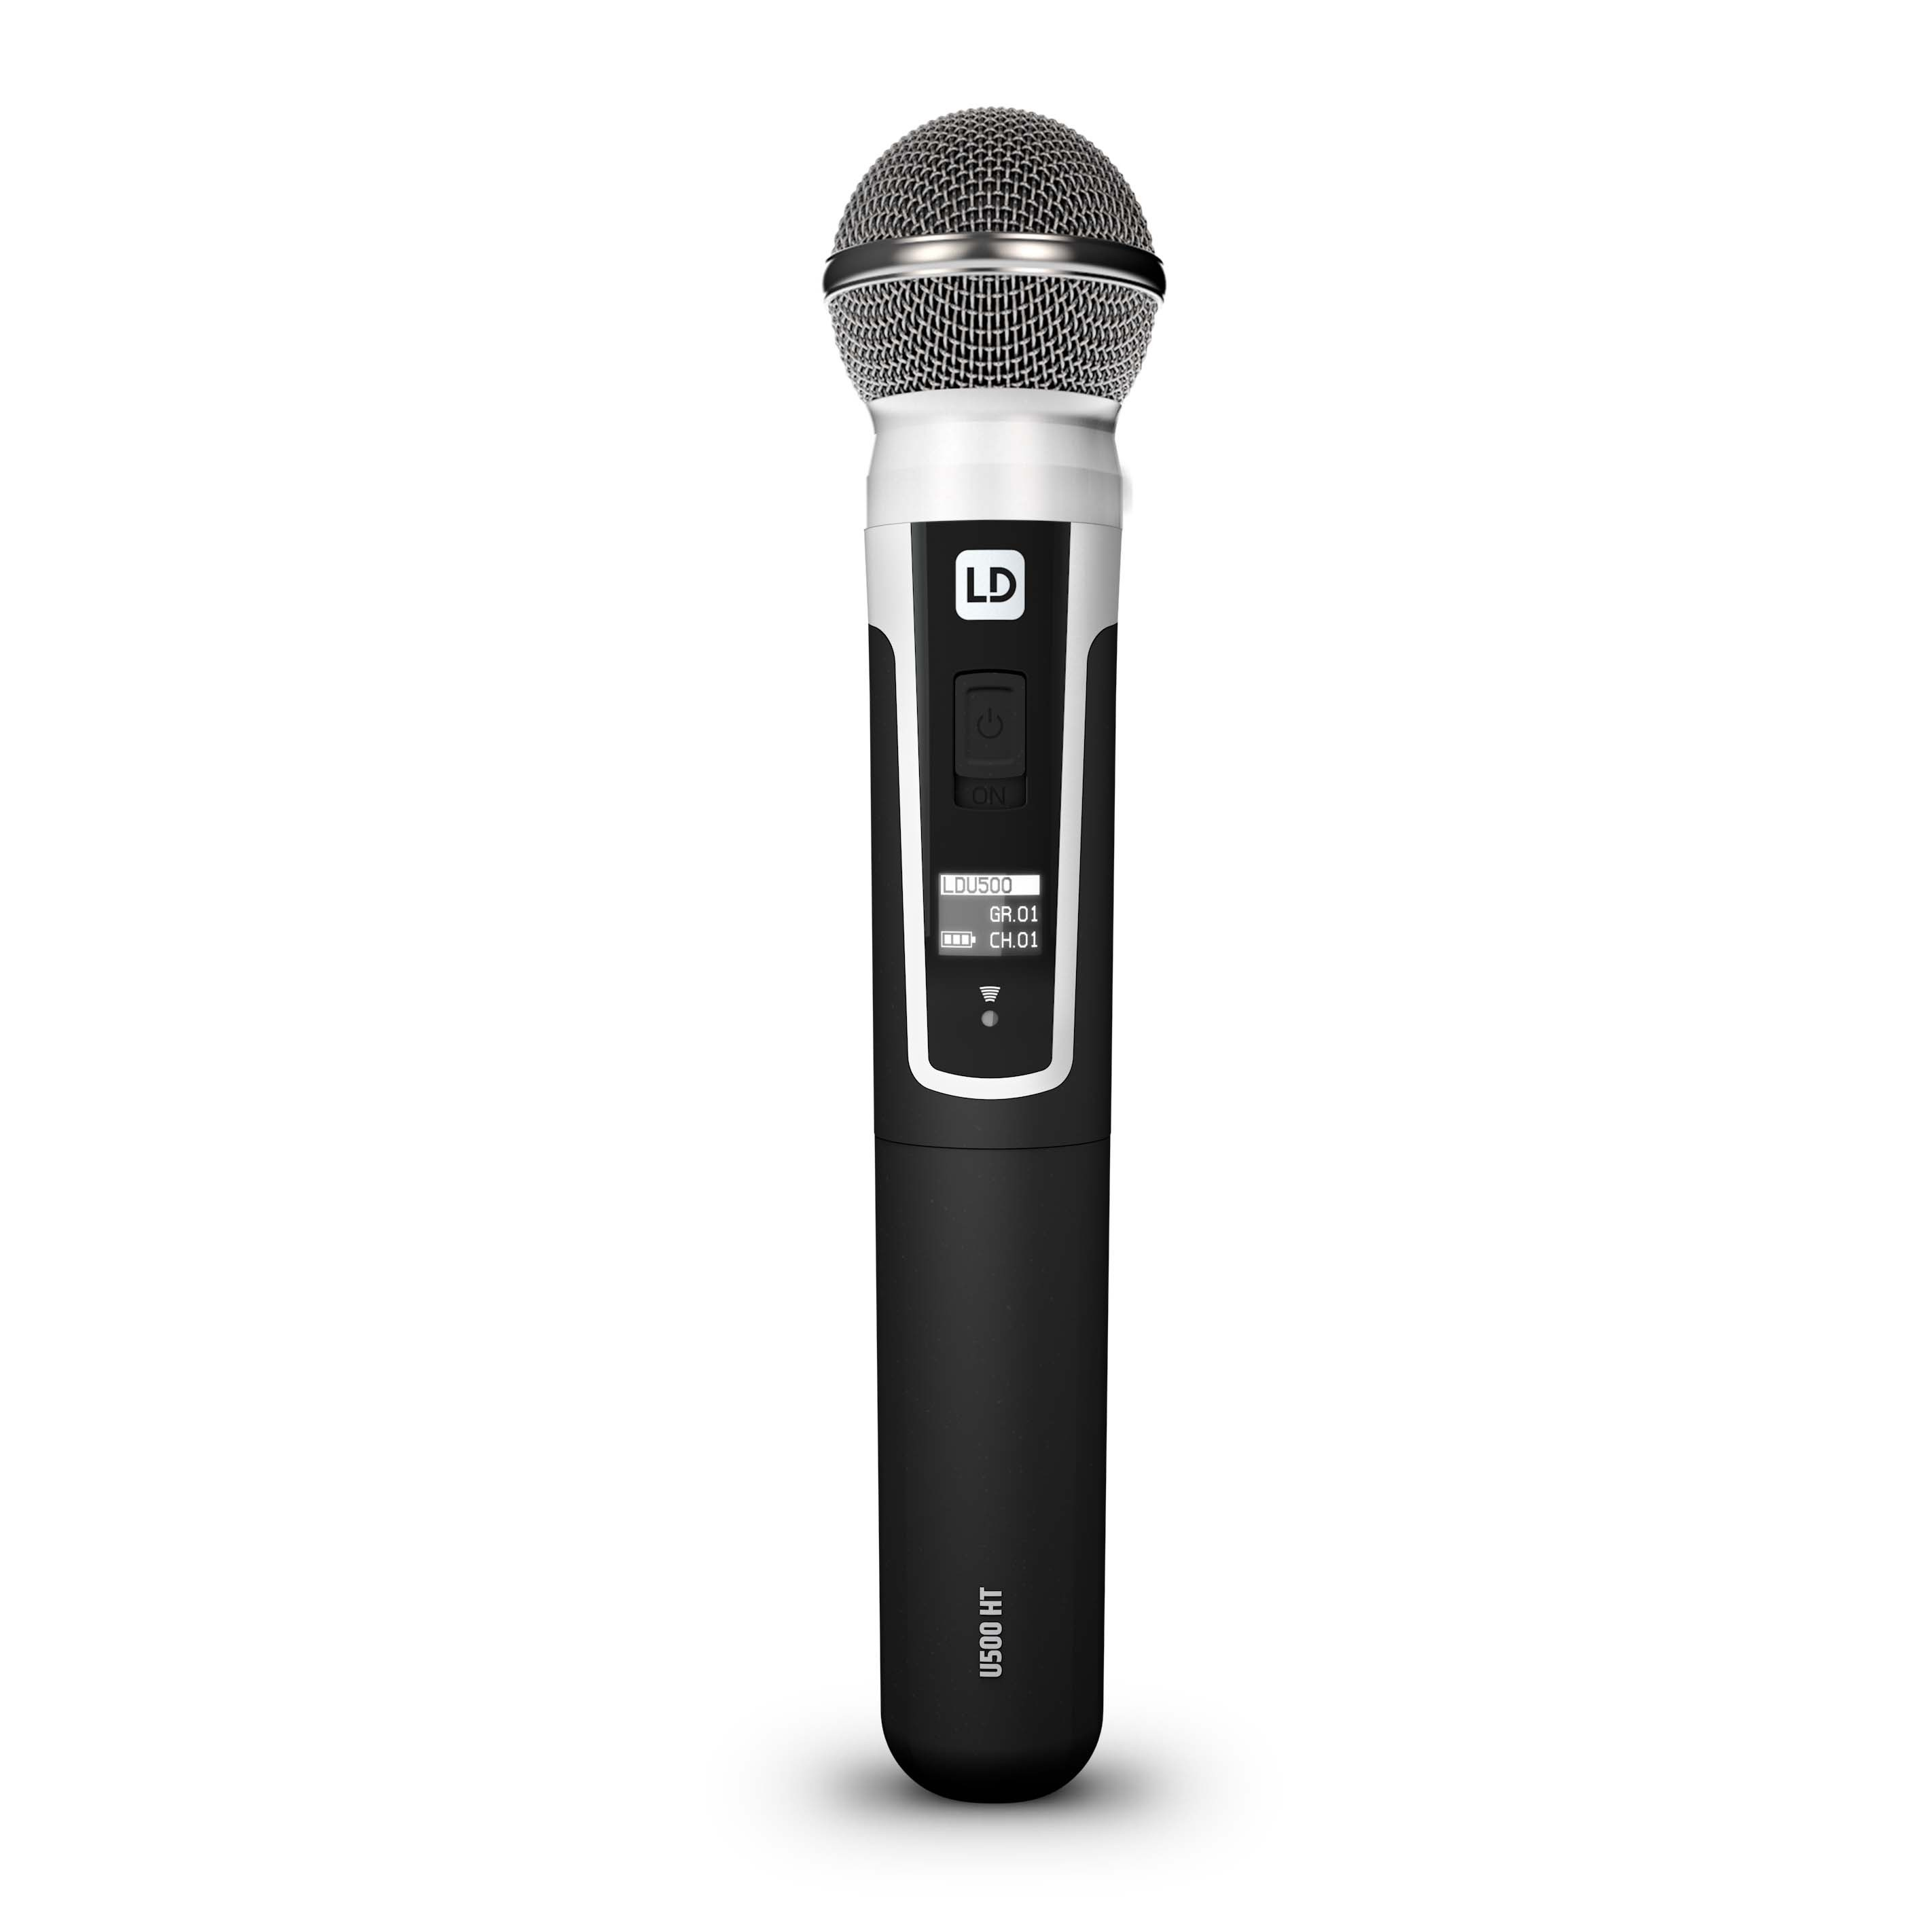 U508 MD Dynamic handheld microphone